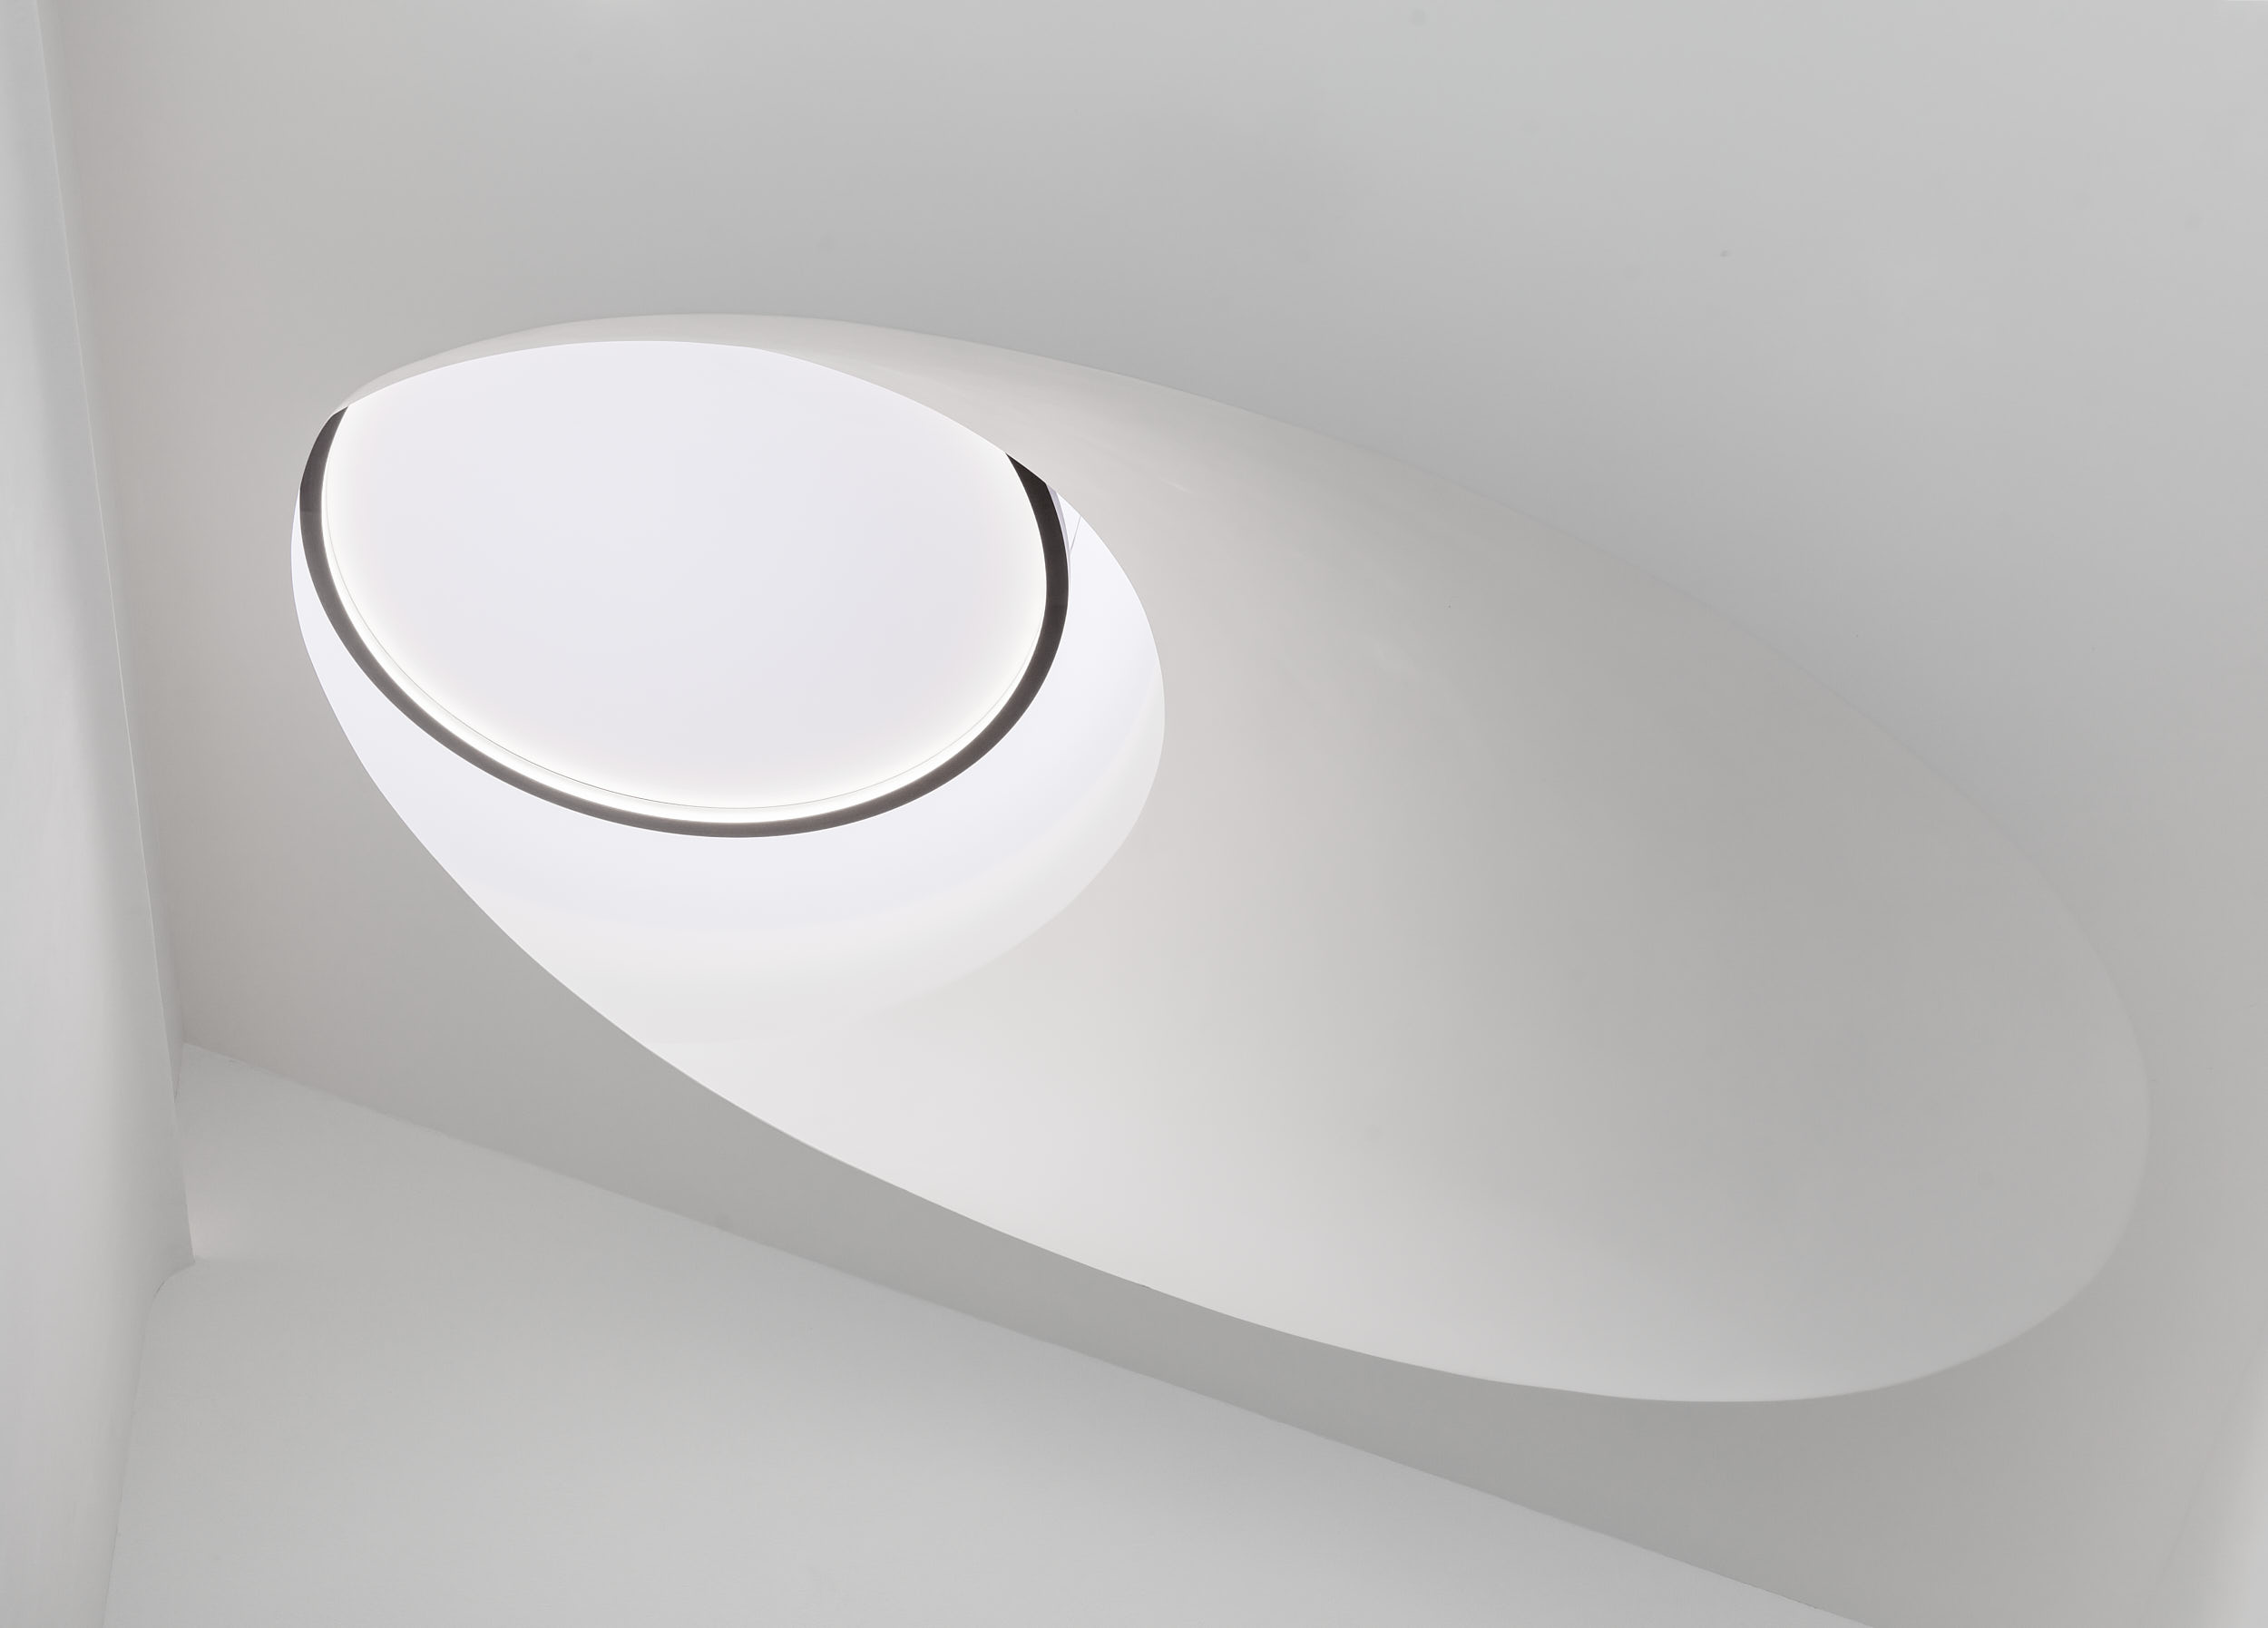 Sculptural rooflight brings more light to the staircase.